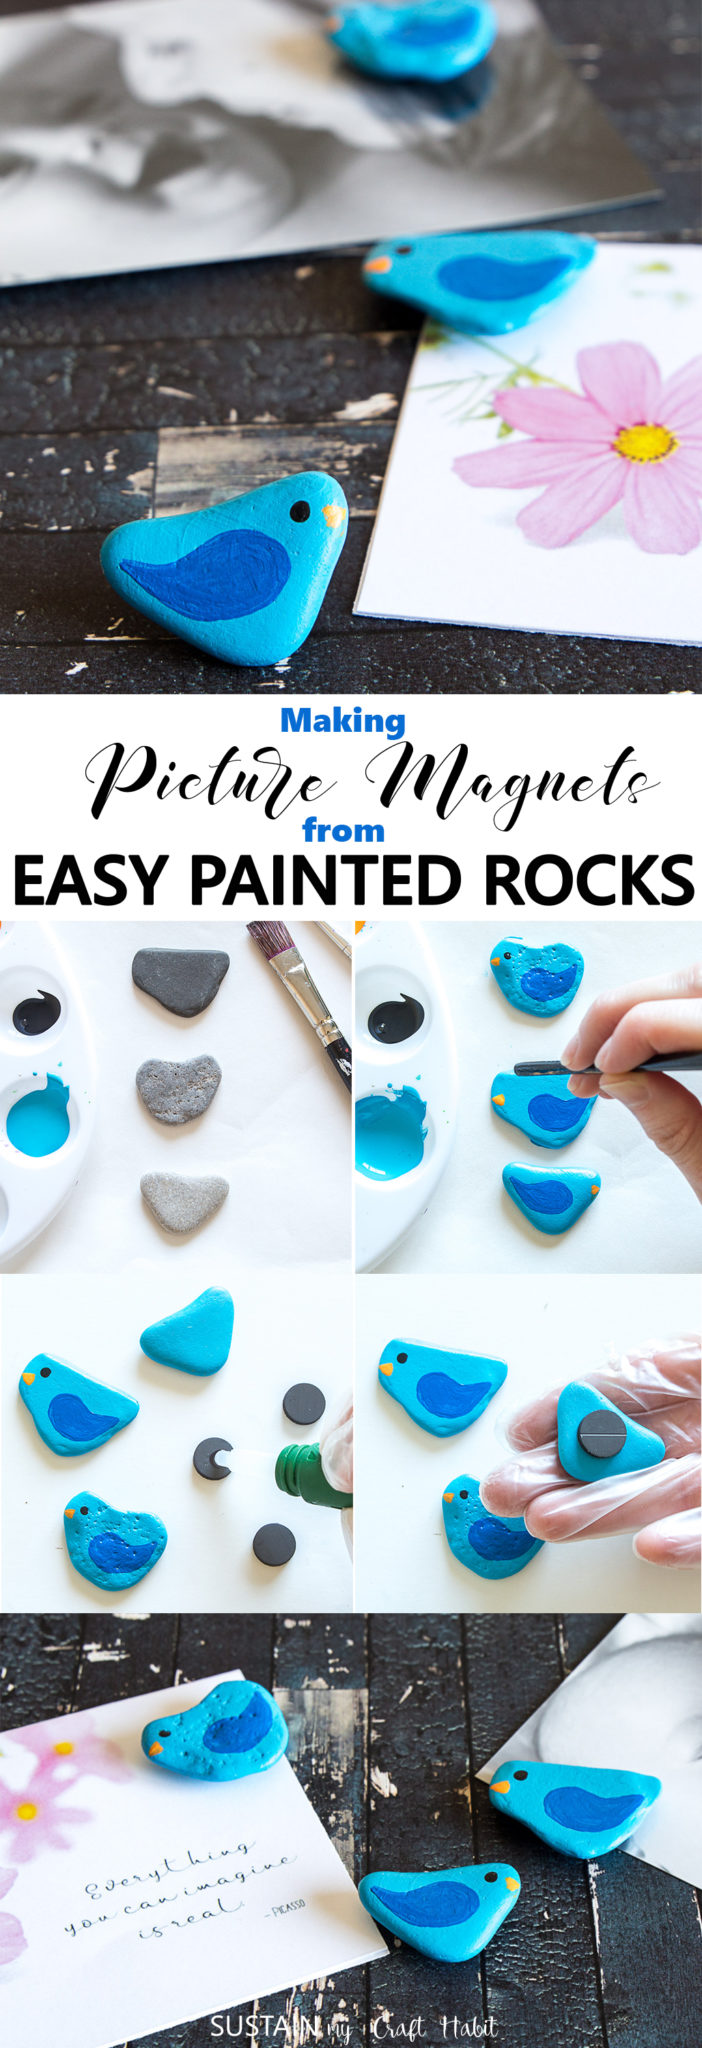 Adorable and easy painted rocks! These little painted rock birds were turned into useful fridge magnets. Pretty spring decor idea! #rockpainting #birds #paintedrocks #springcrafts